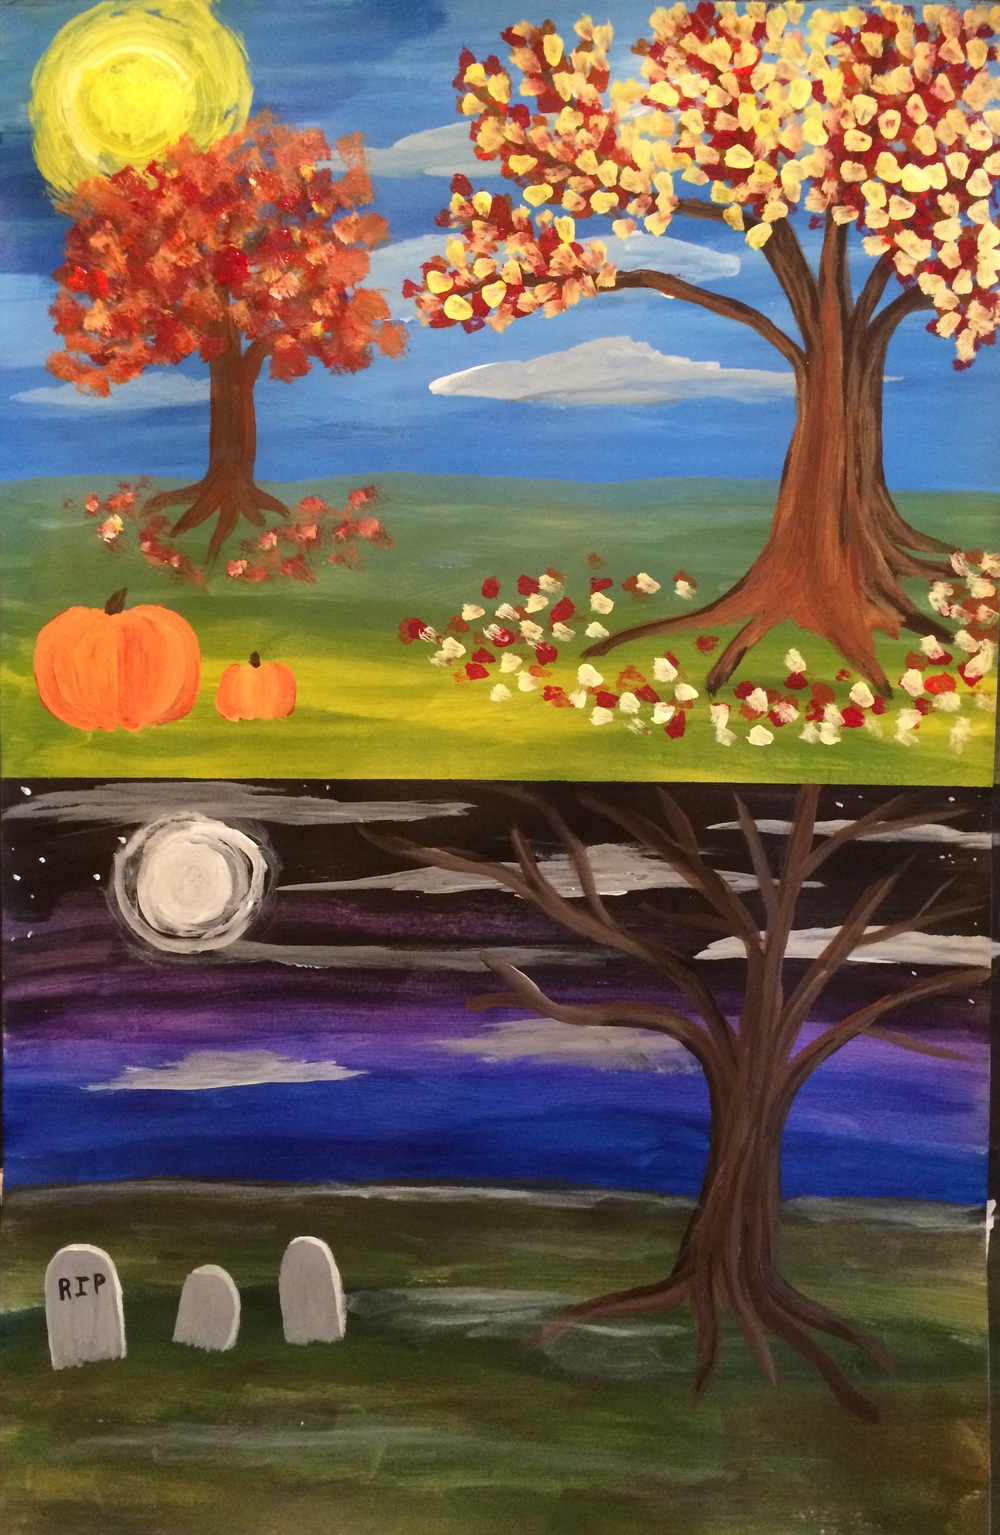 Choose to paint a day or night scene